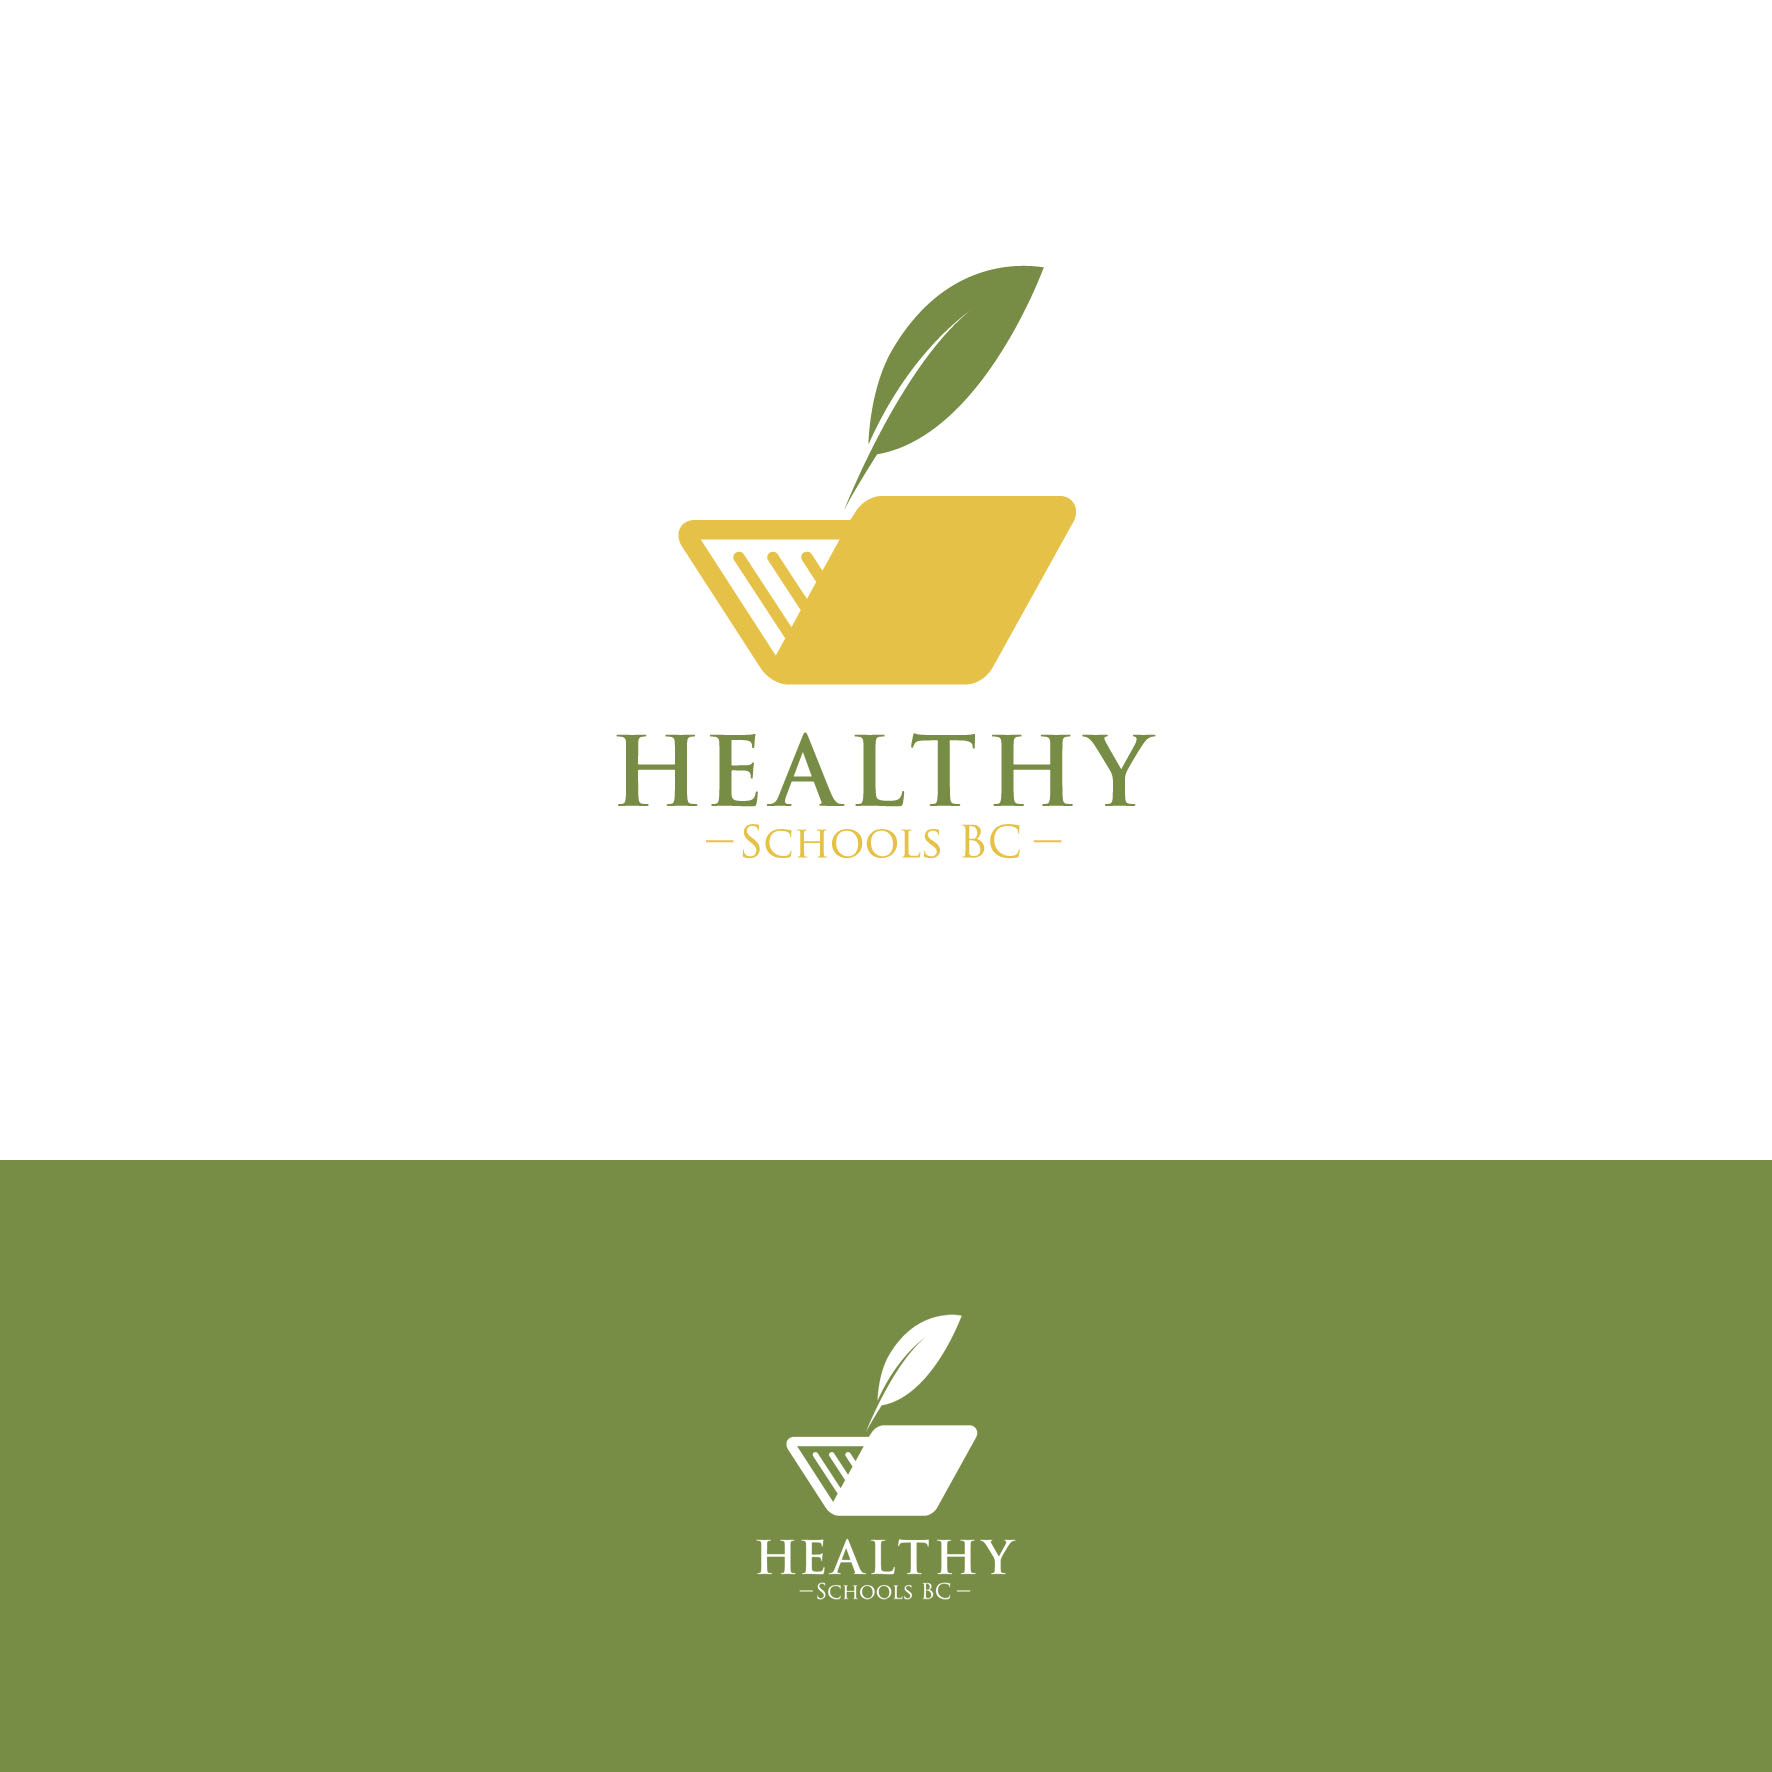 Logo Design by tanganpanas - Entry No. 183 in the Logo Design Contest SImple, Creative and Clean Logo Design for Healthy Schools British Columbia, Canada.